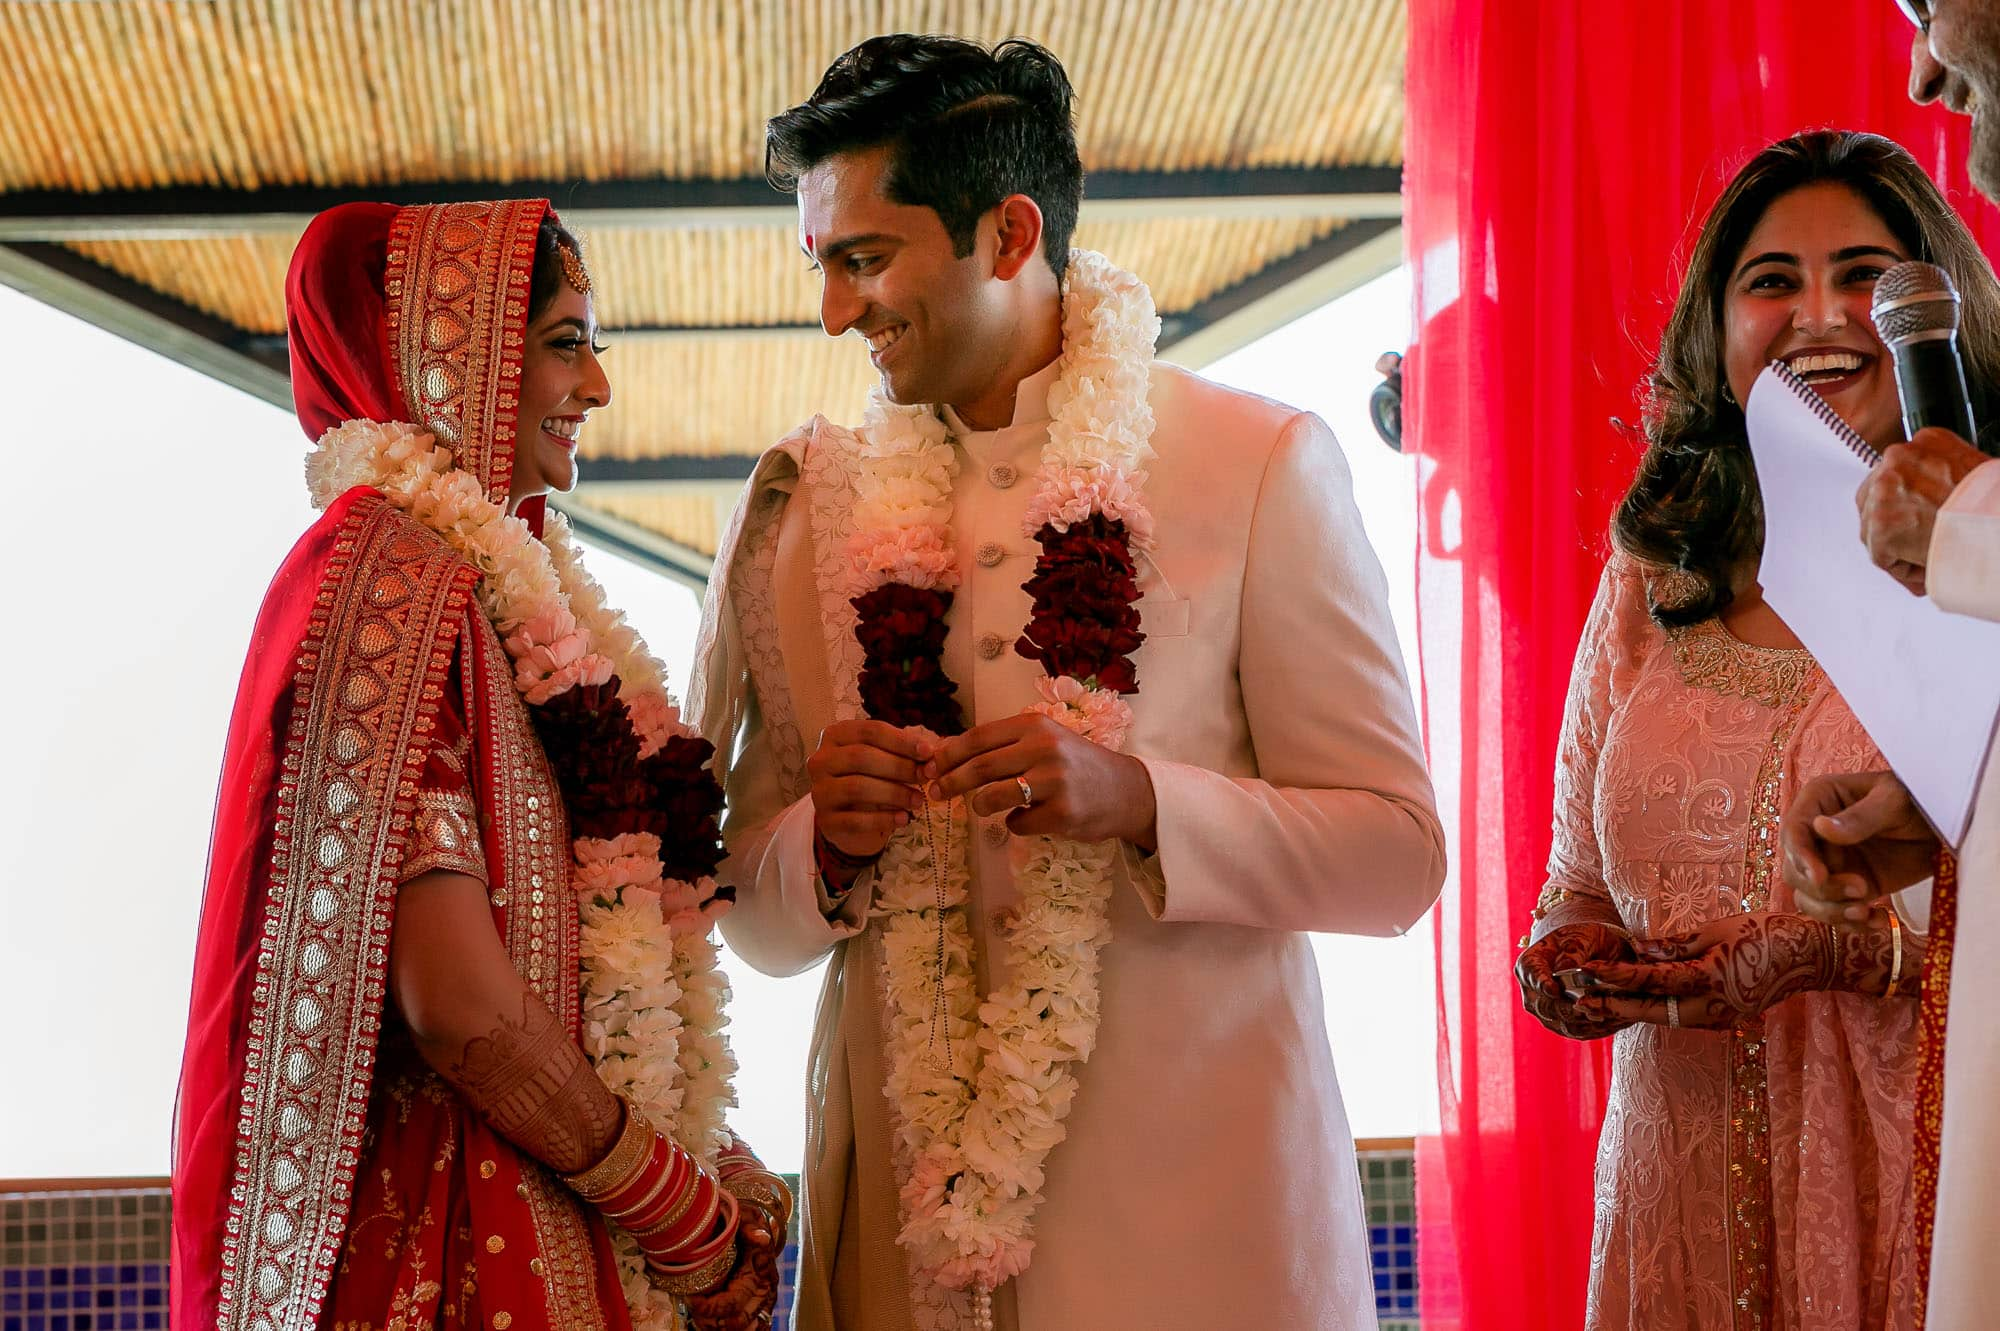 Exchanging rings at the traditional Hindu Muslim wedding ceremony